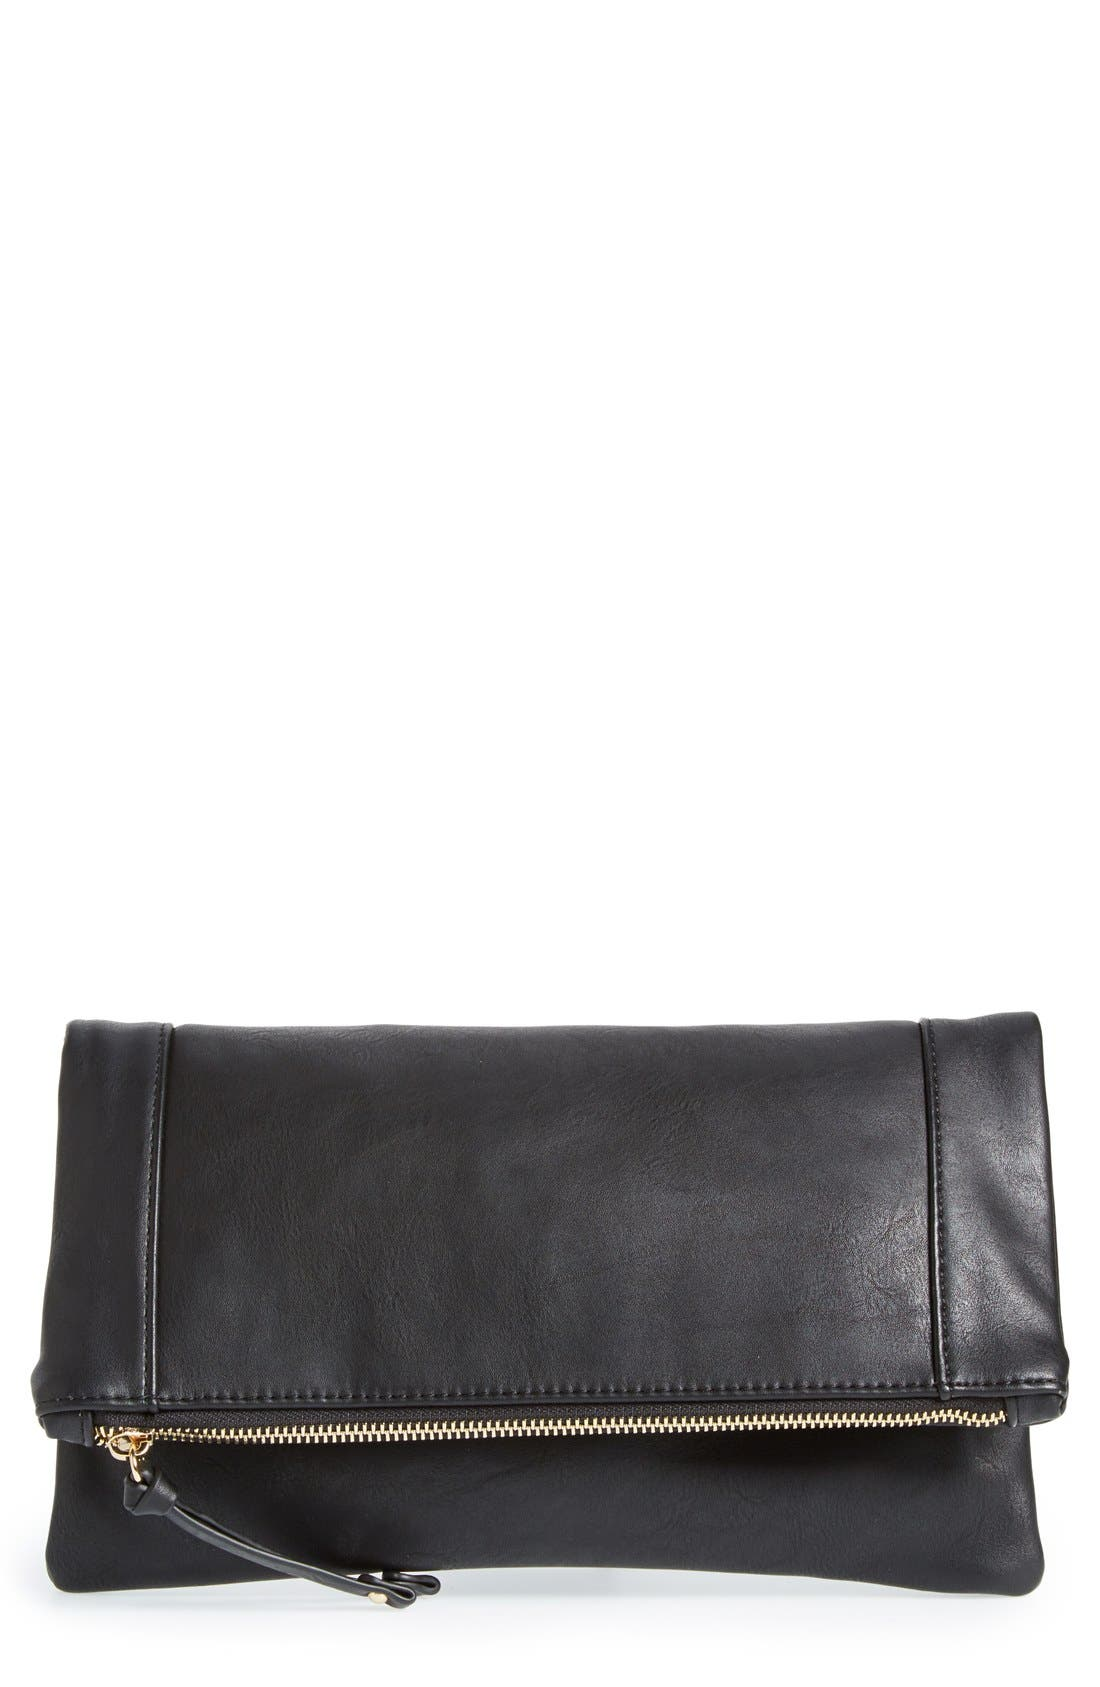 SOLE SOCIETY Marlena Faux Leather Foldover Clutch, Main, color, JET BLACK